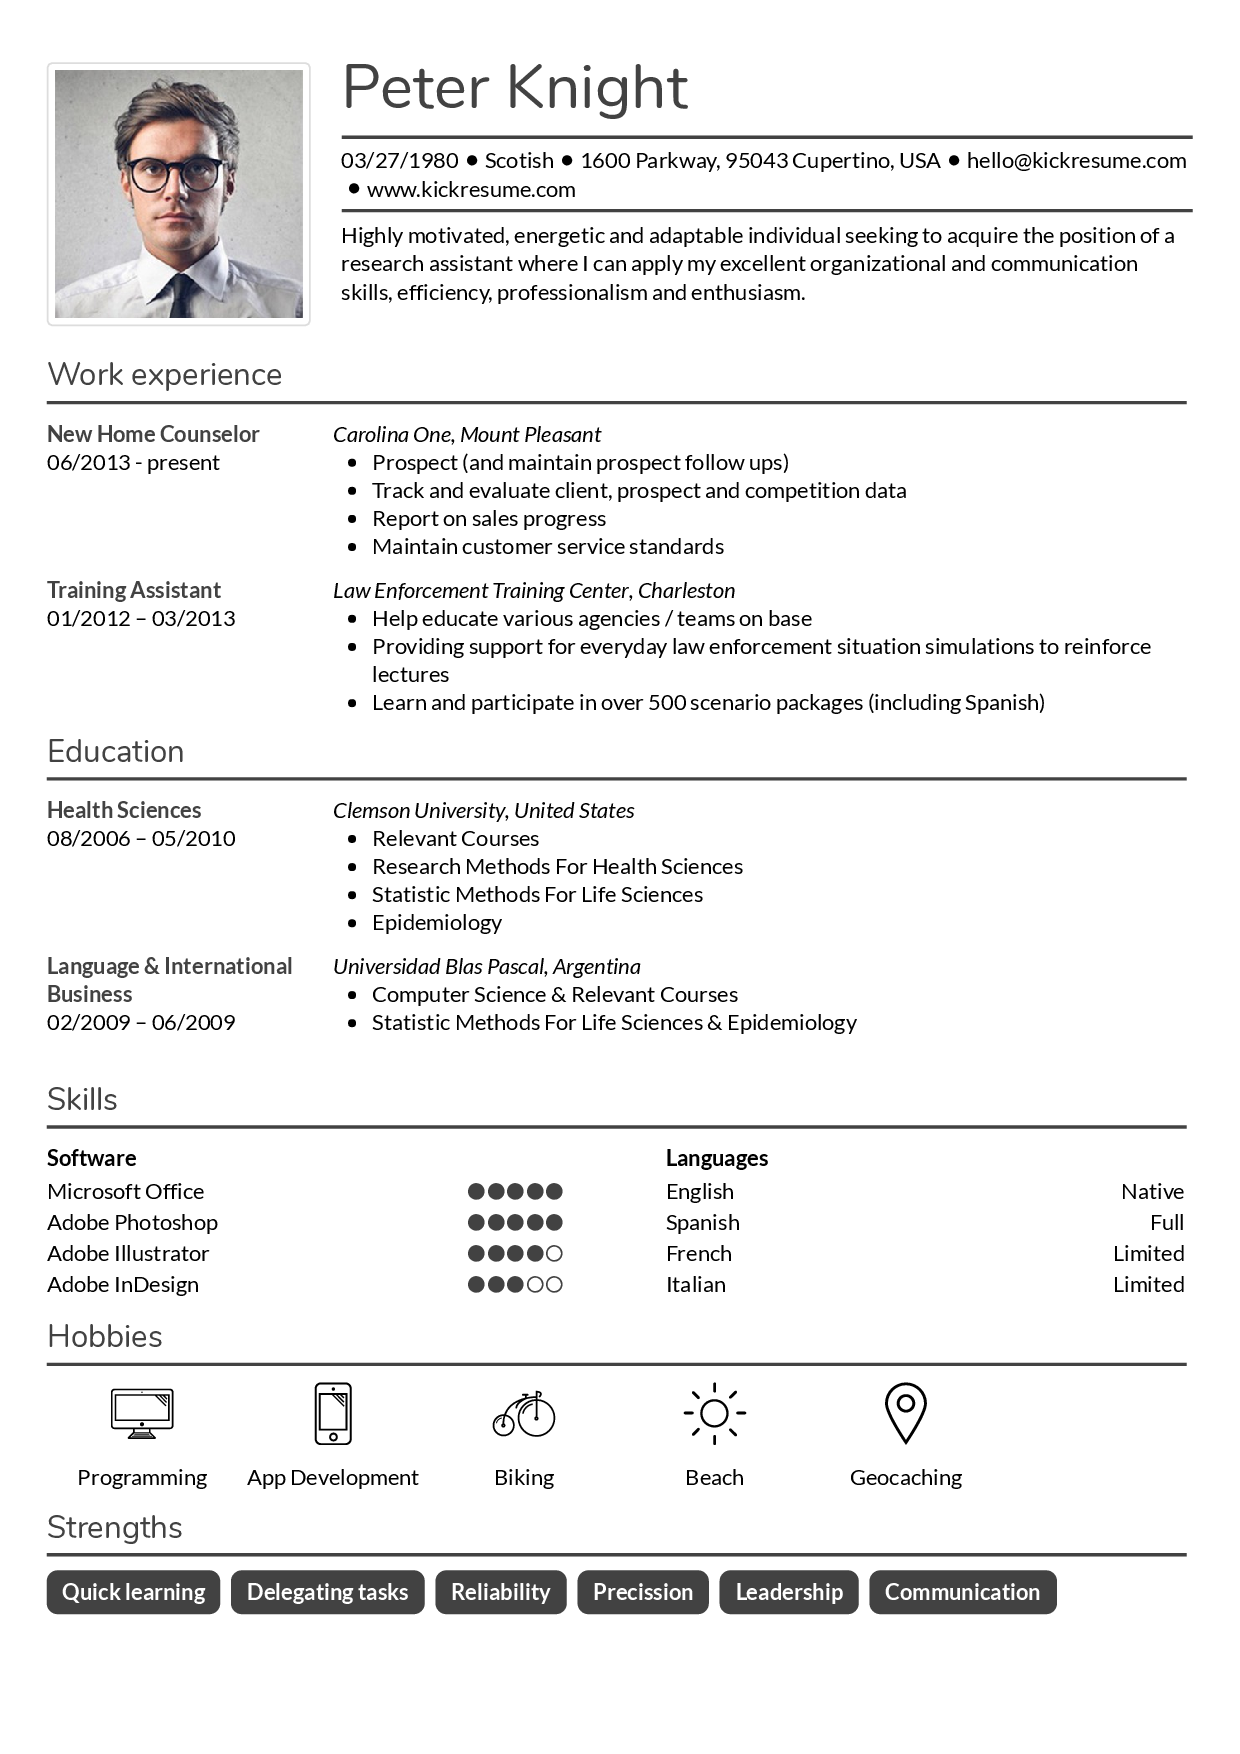 Kickresume Perfect resume and cover letter are just a